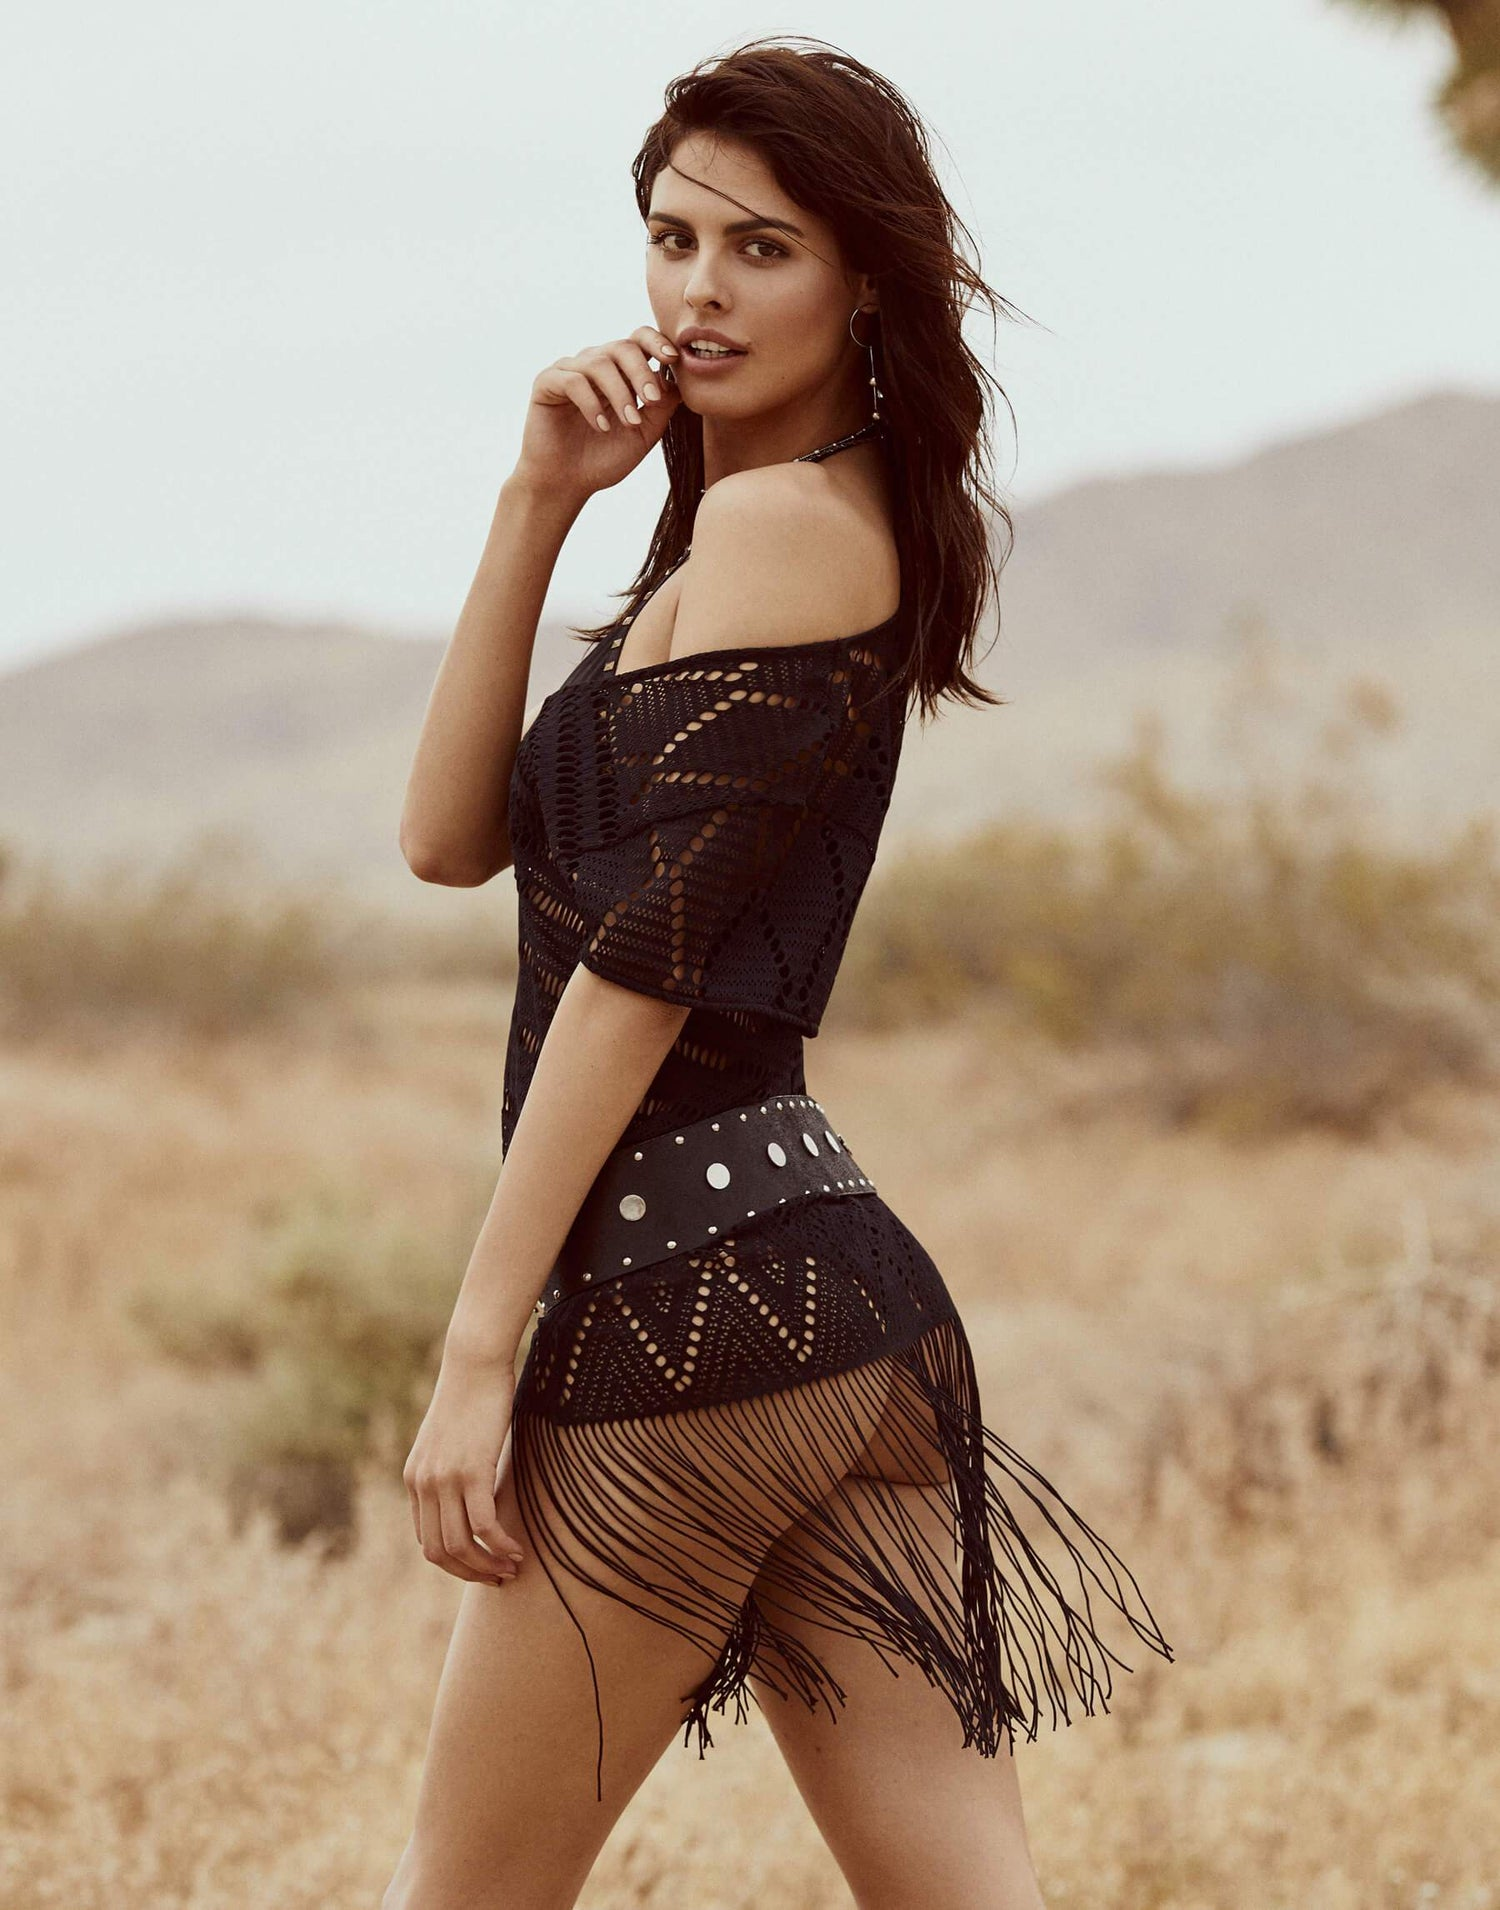 Black Mini Crochet Dress for Beach Cover Up - side view